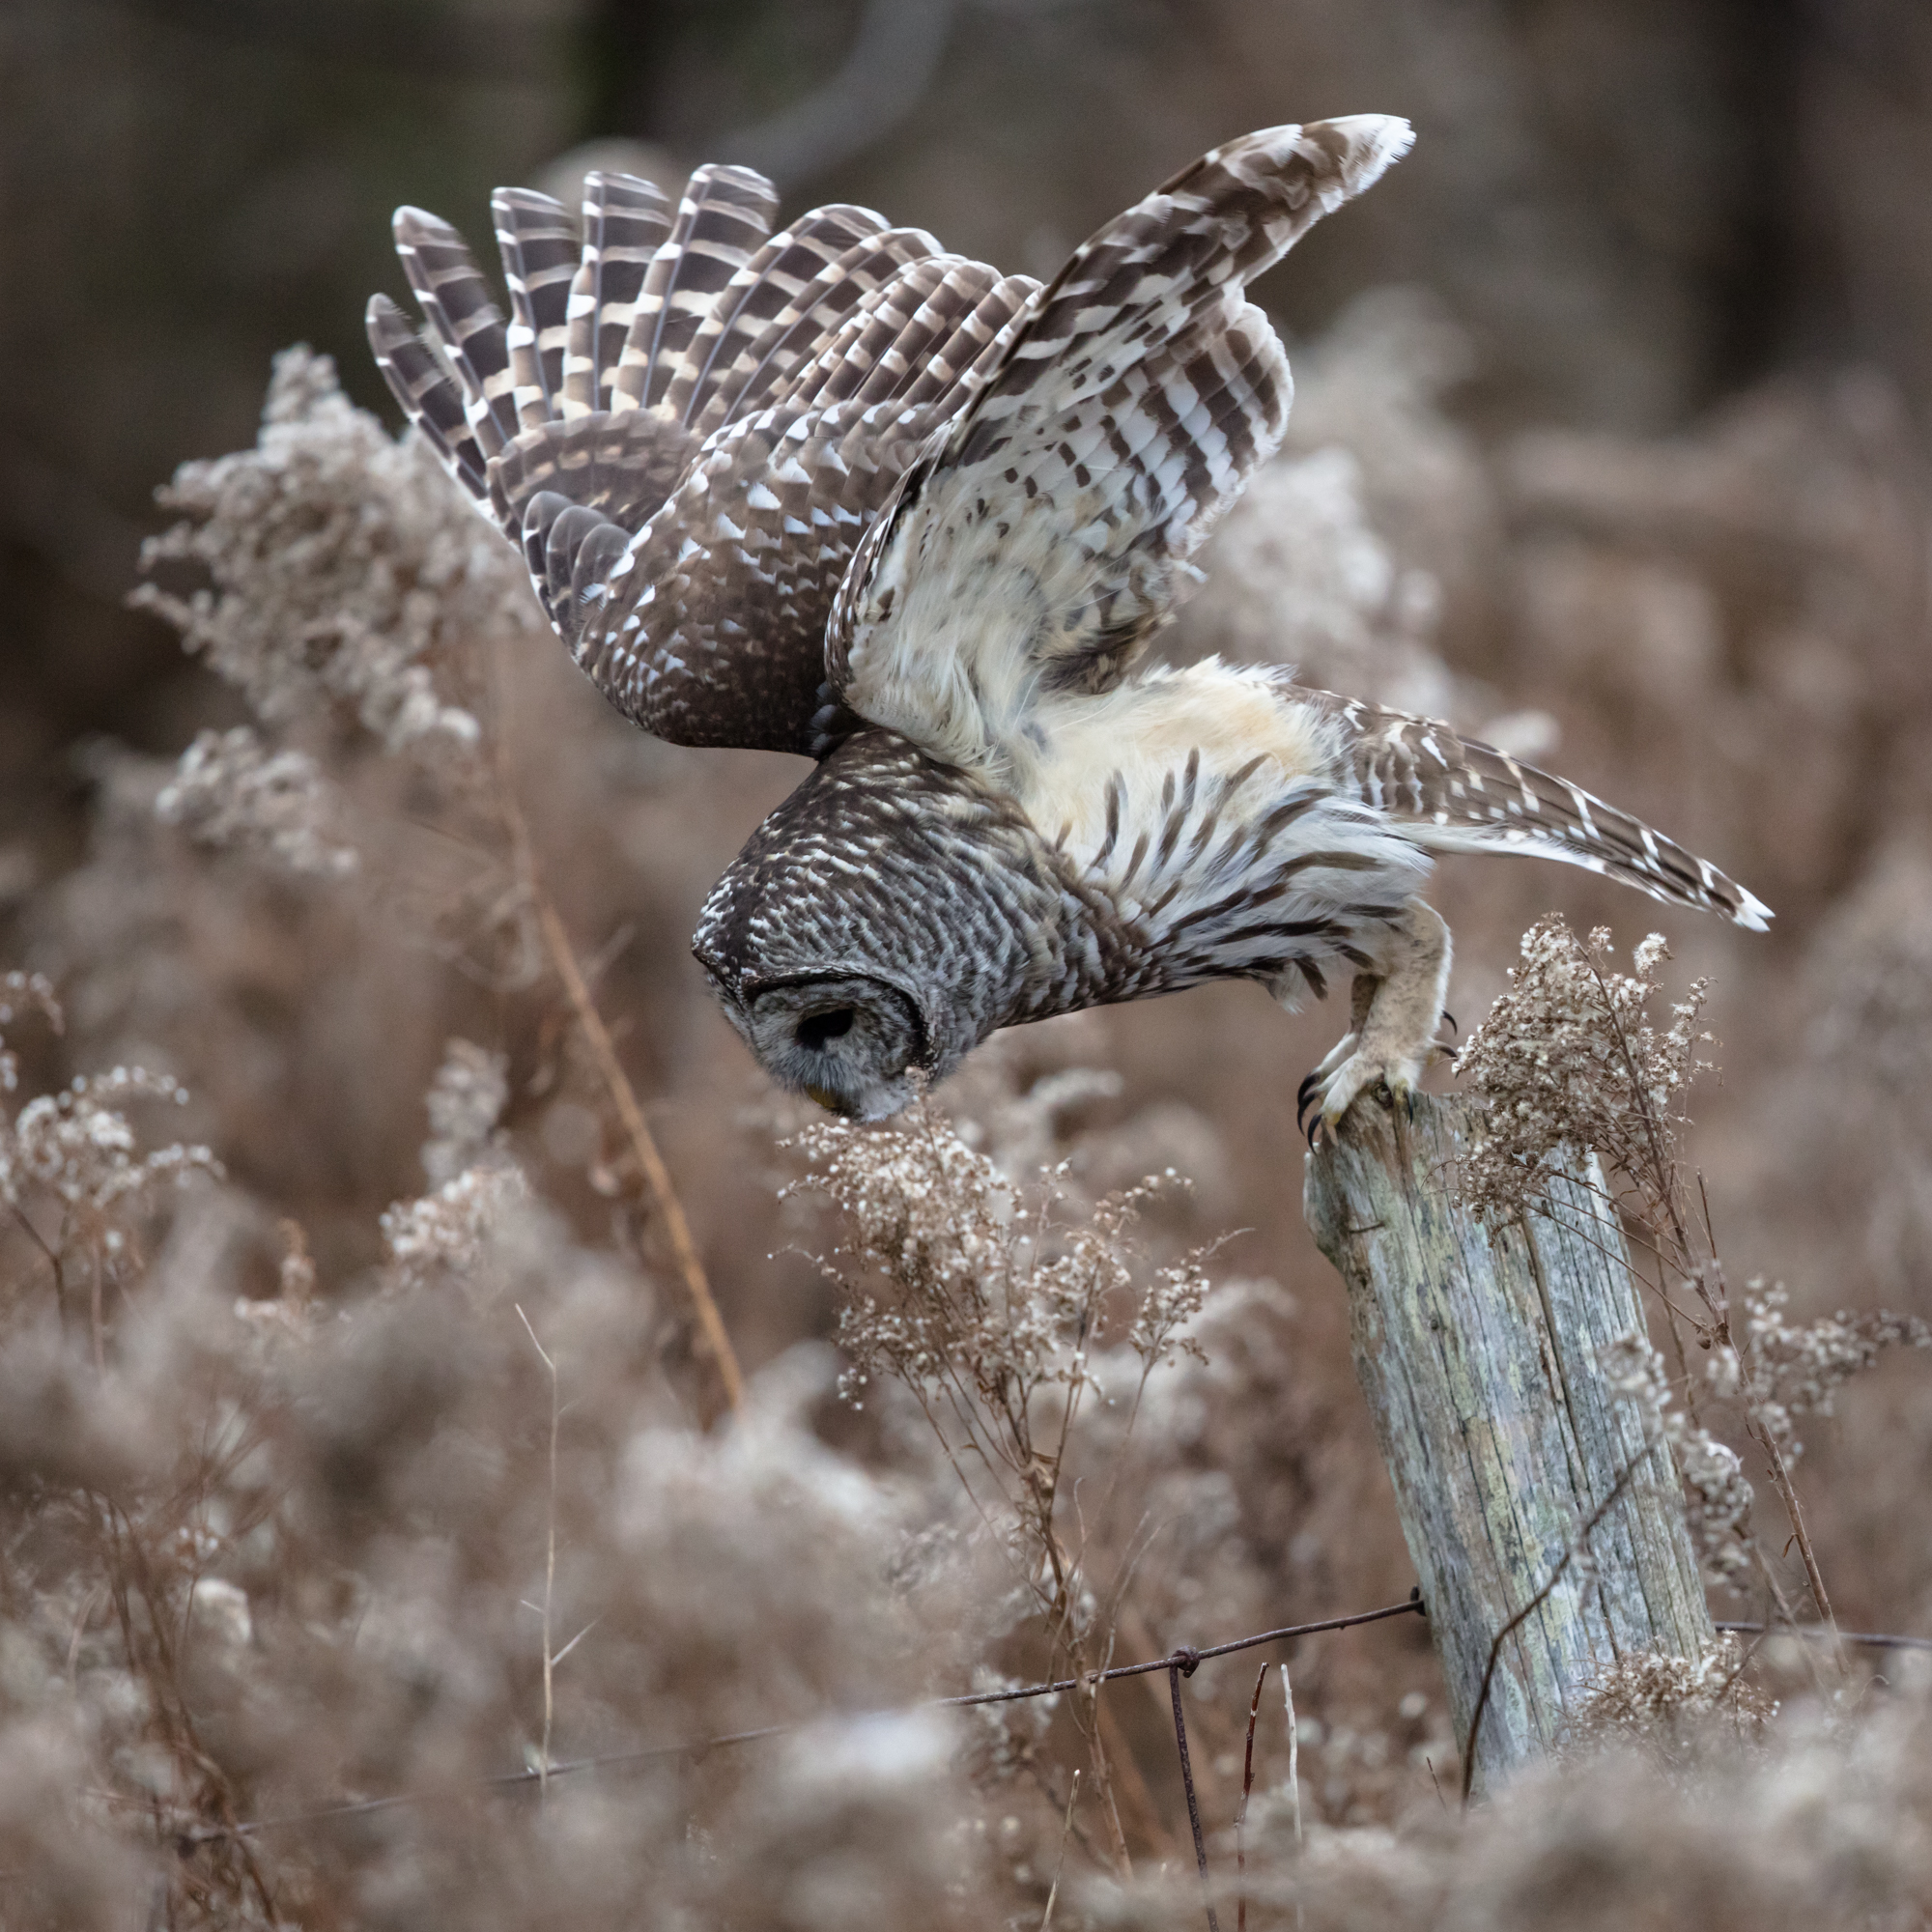 Start of the hunt, Barred Owl taking it to the voles.